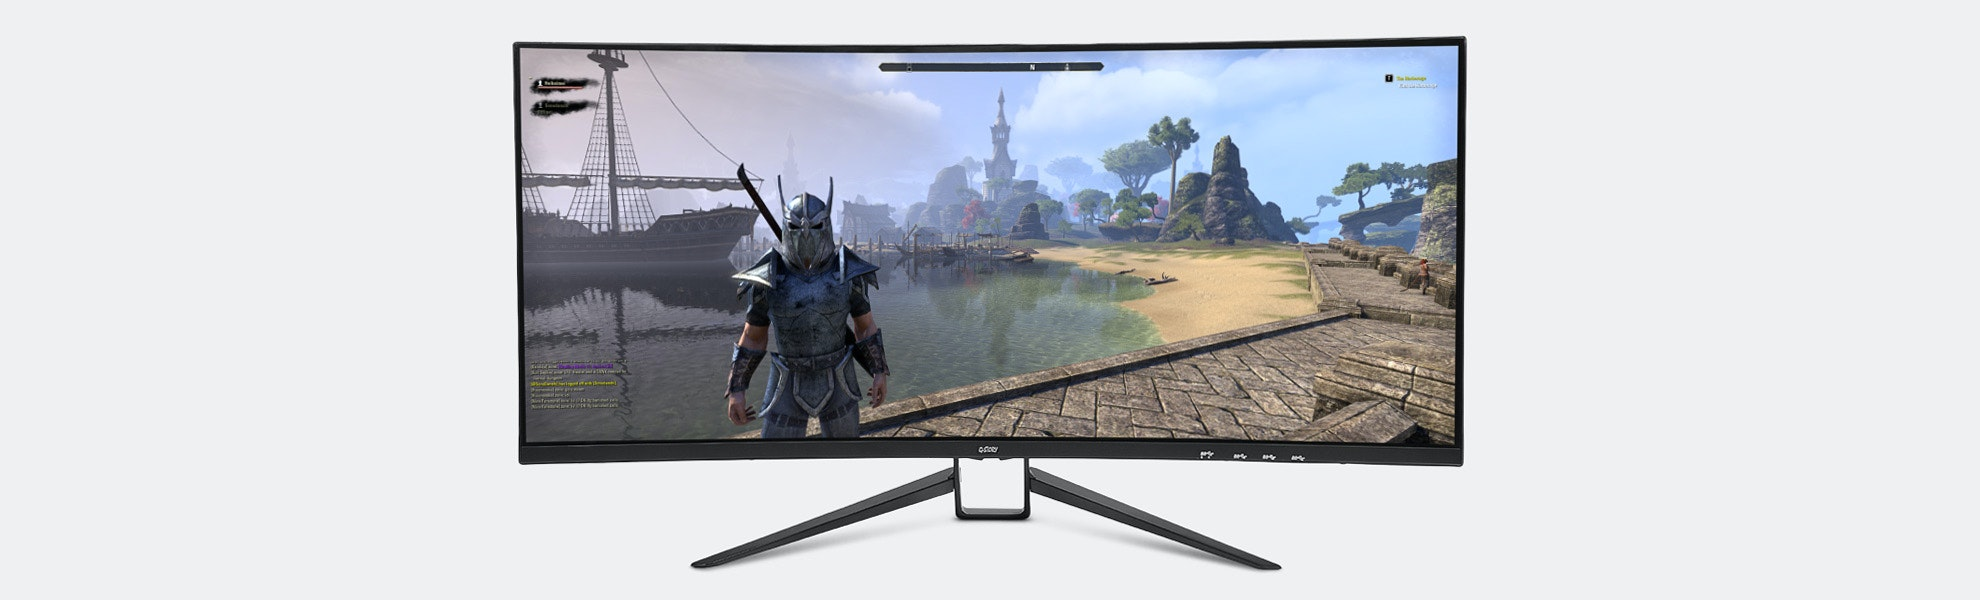 """G-Story 35"""" 120Hz 1440p Curved UWQHD Monitor"""